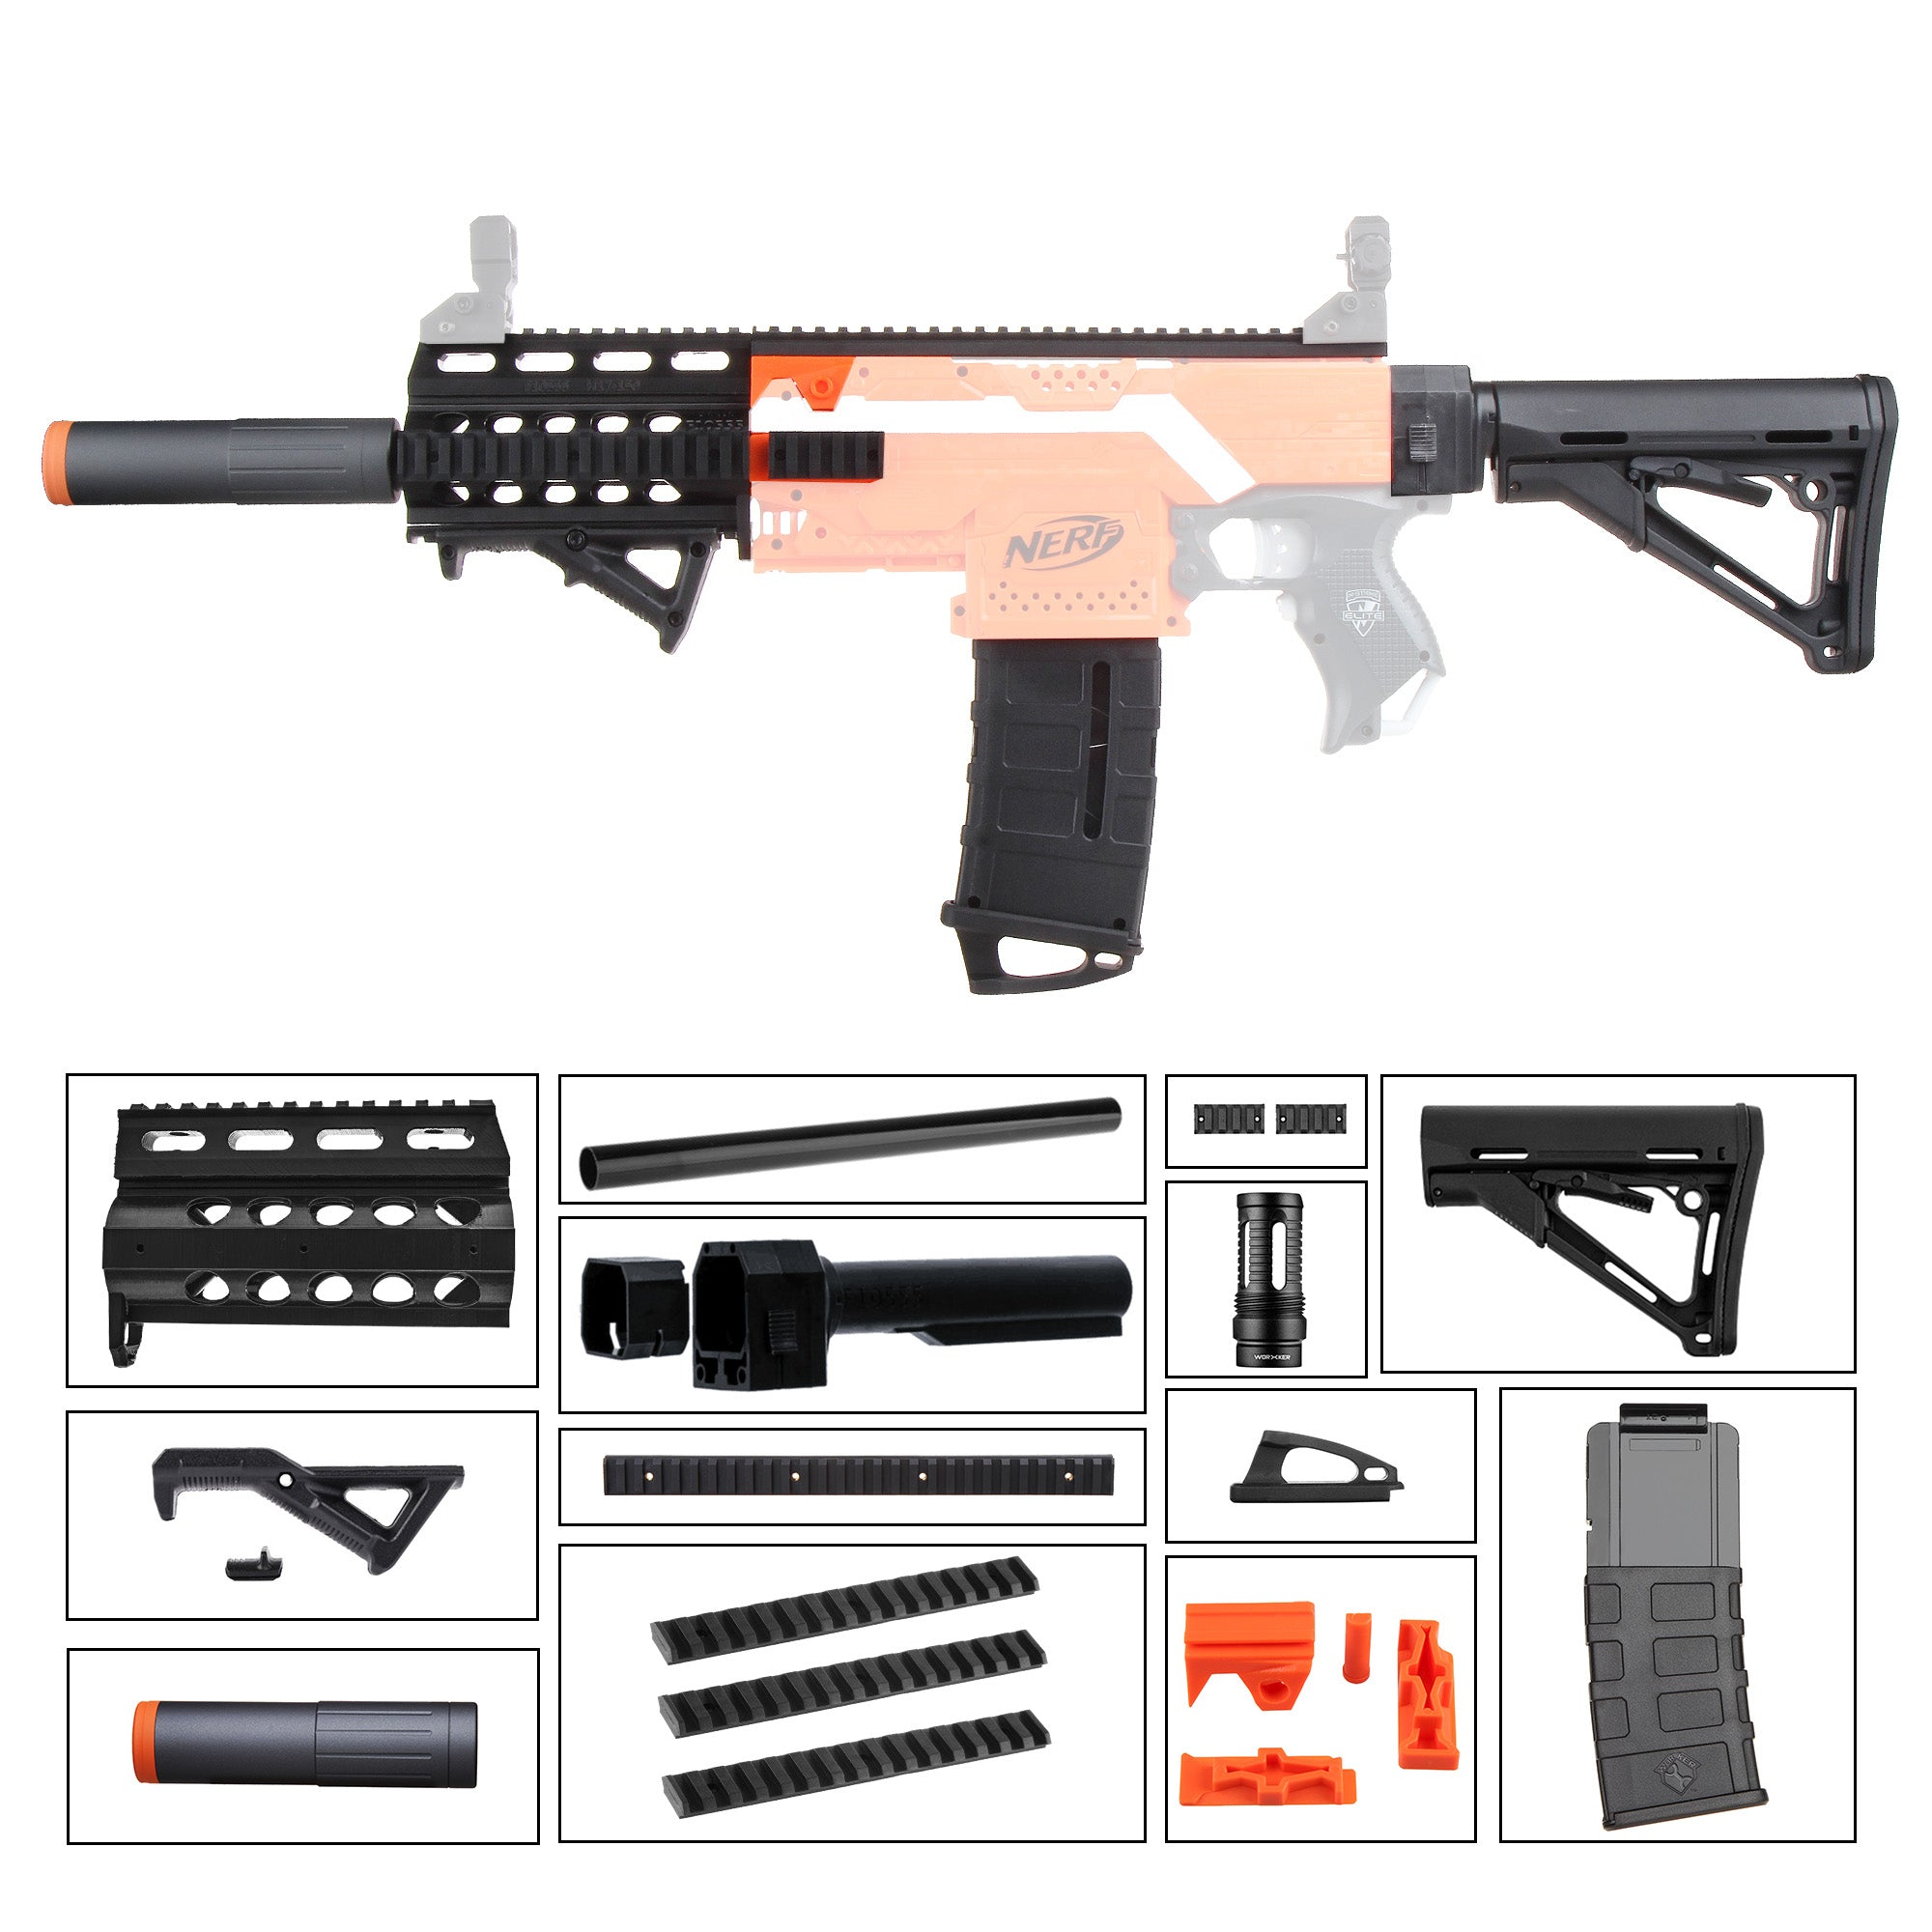 JGCWorker STF-W013 M4 Style Mod Kits Set for Nerf N-Strike Elite Stryfe Blaster - Nerf Mod Kits -Worker Mod Kits